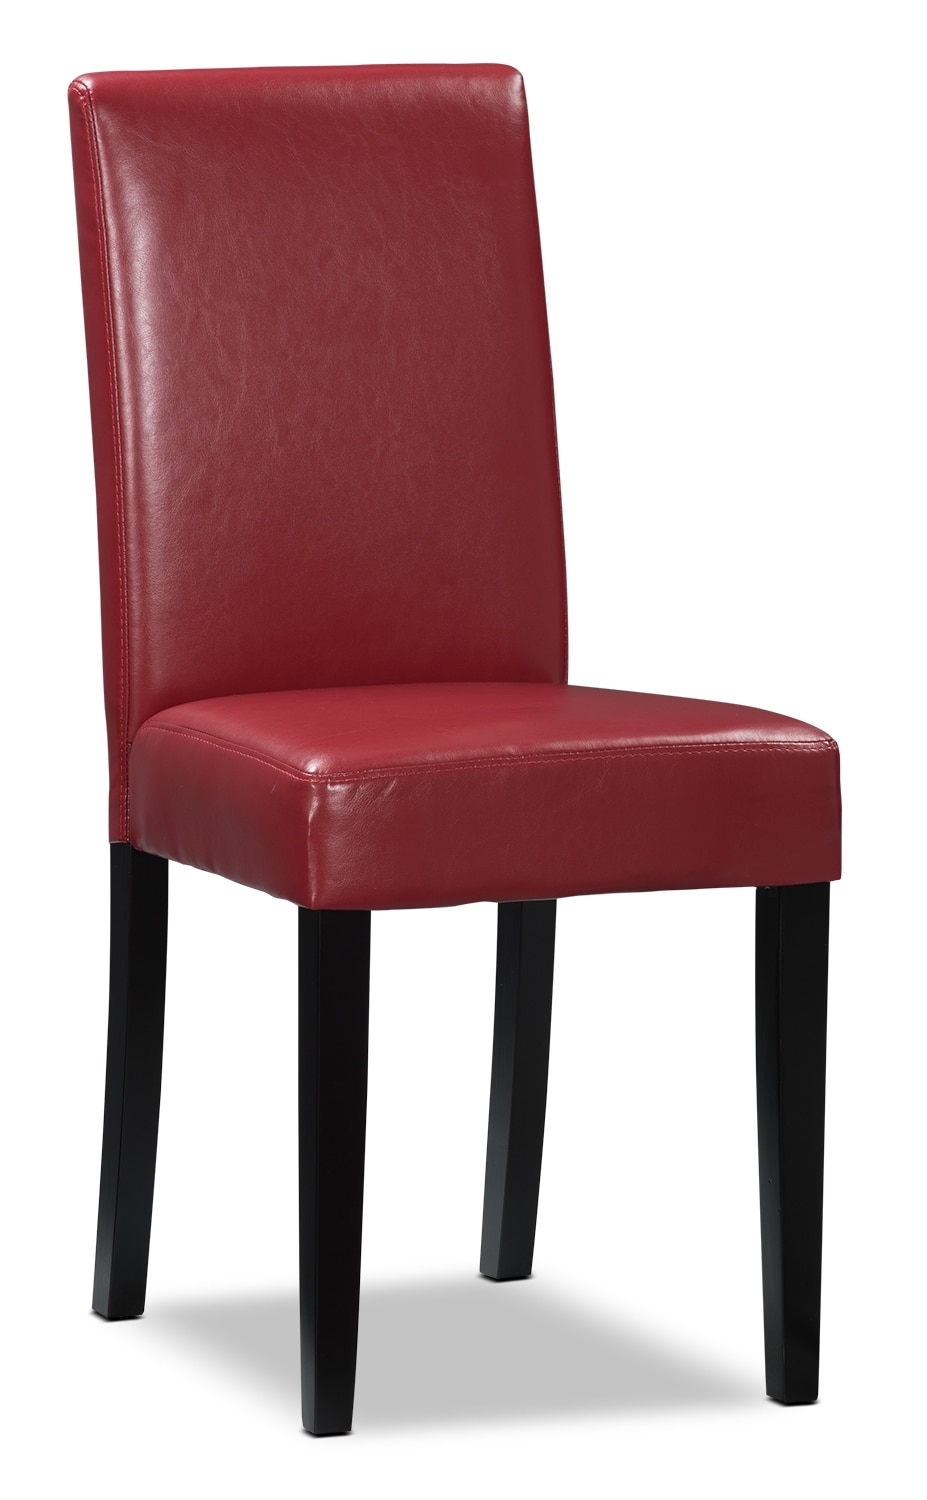 Red Faux Leather Accent Dining Chair